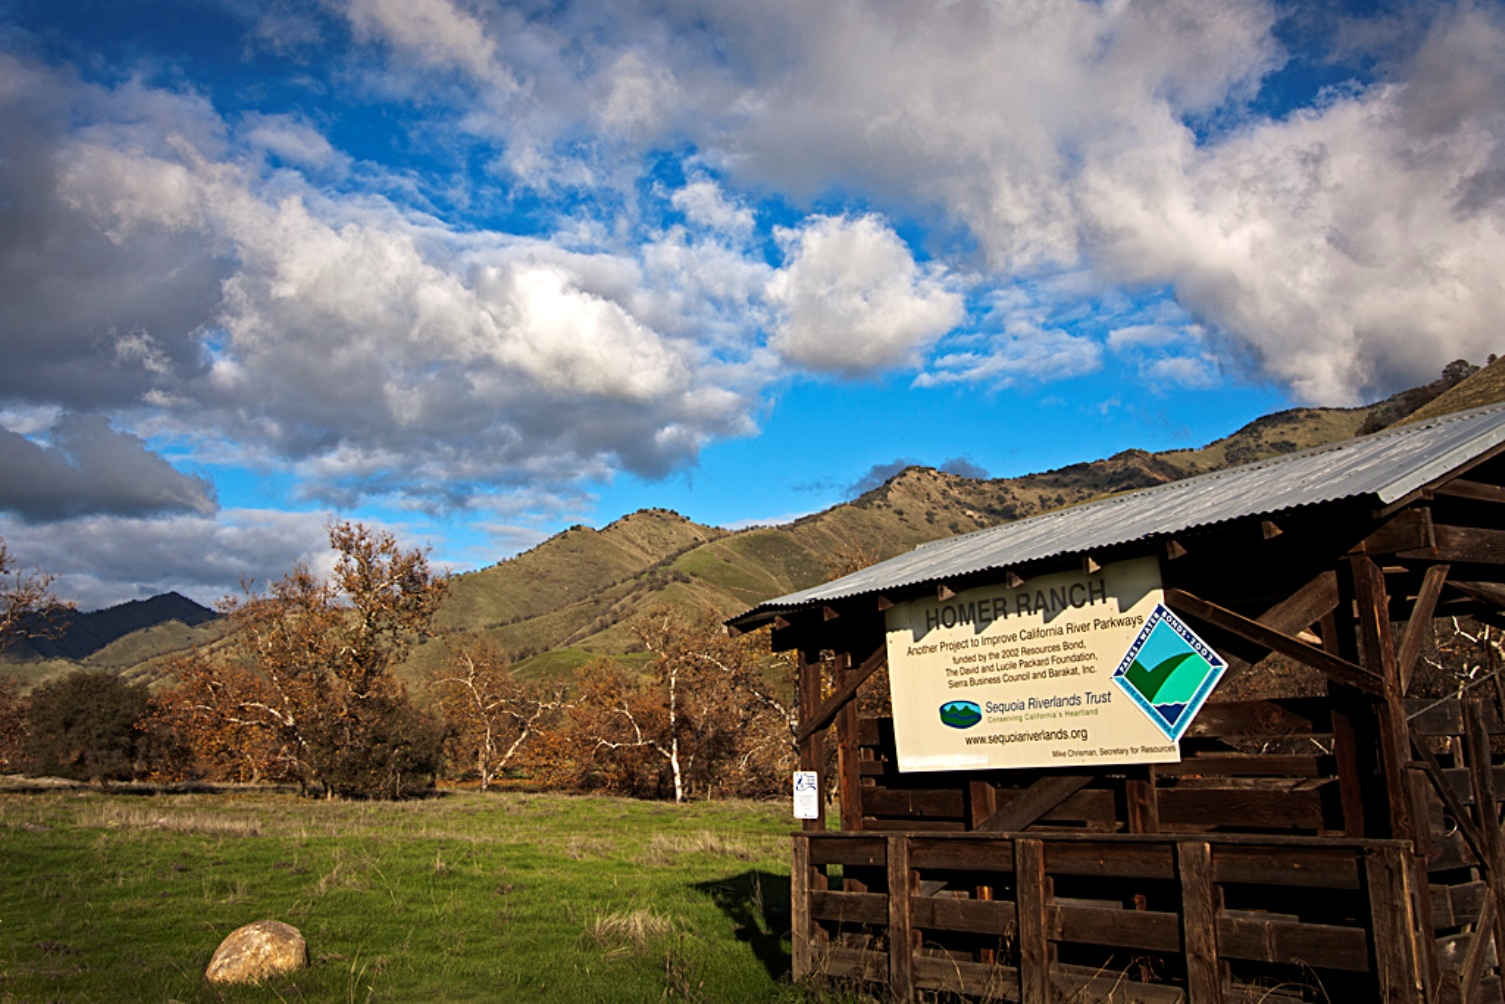 Homer Ranch Preserve reopened for weekends